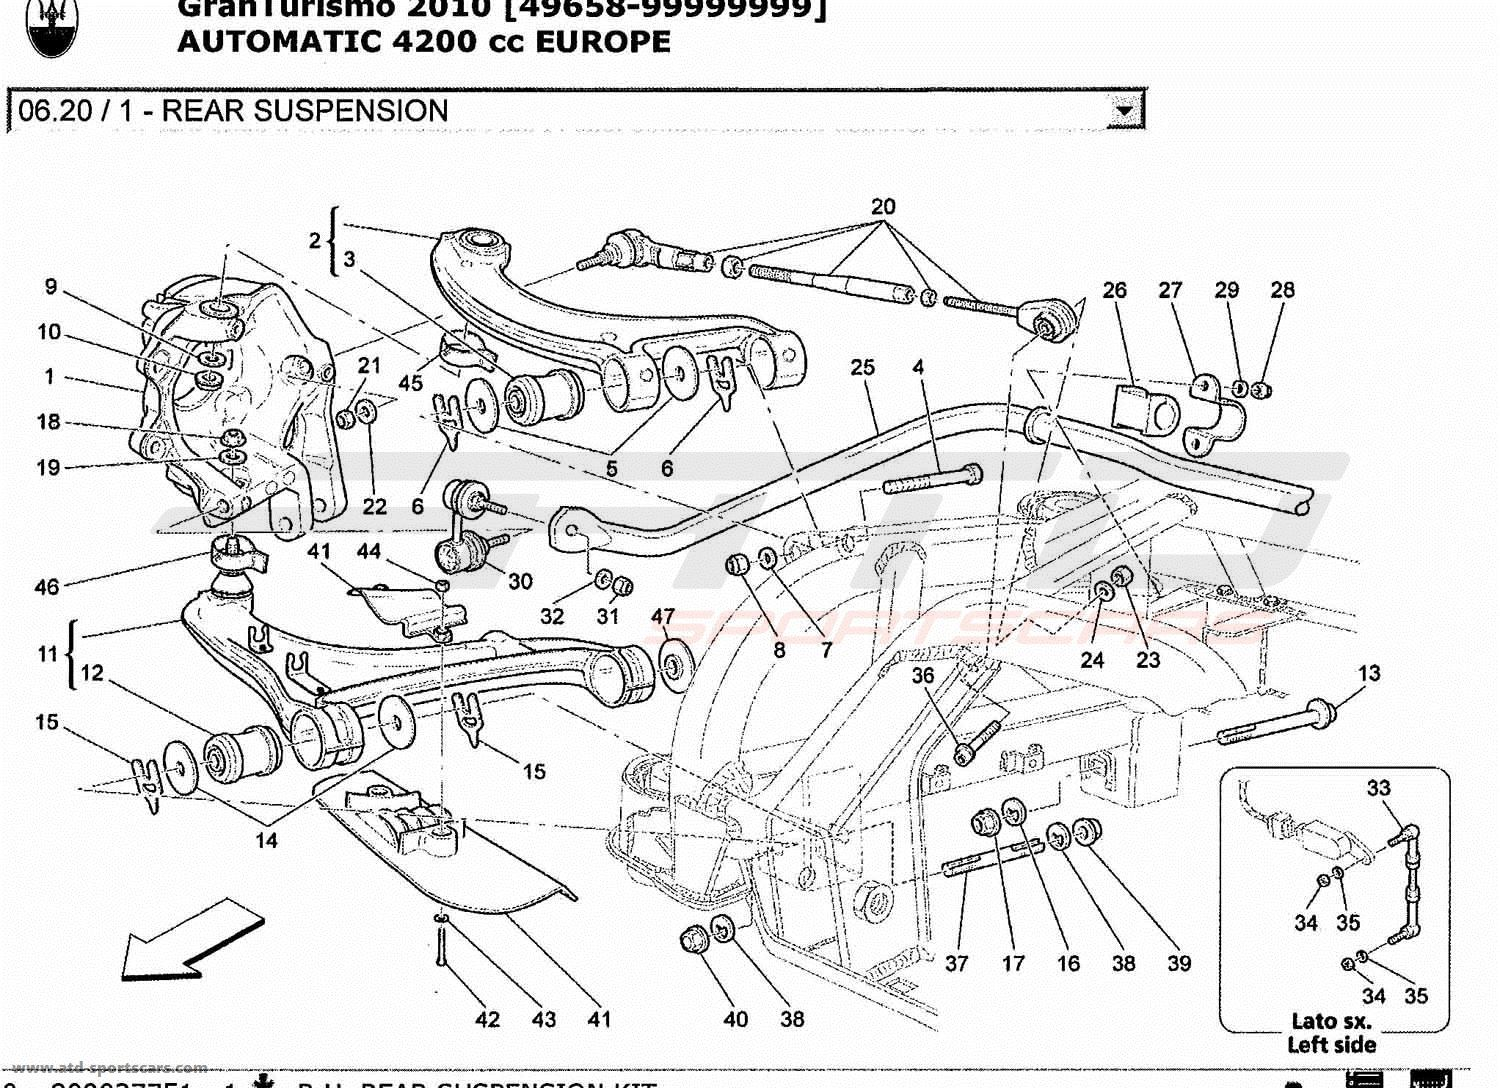 Timing Diagram For A 1997 Subaru Impreza Outback. Subaru